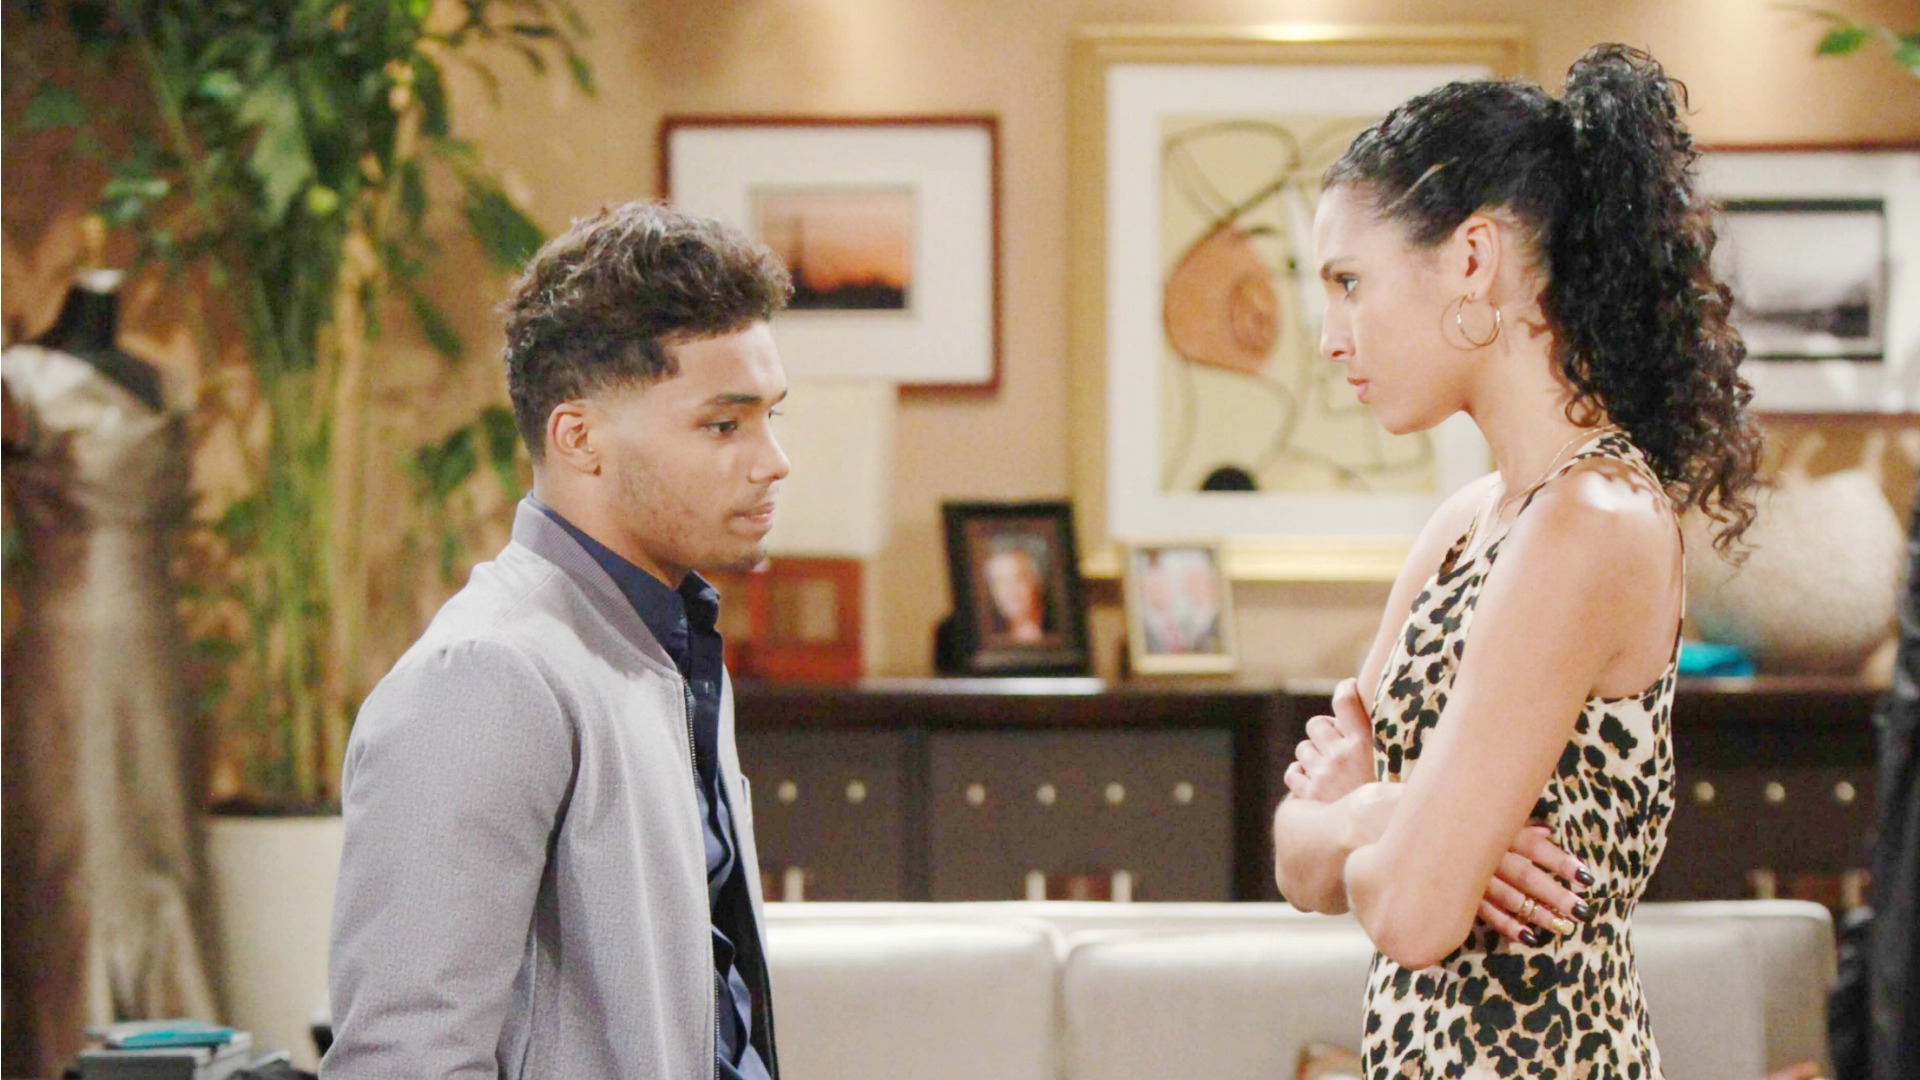 Deeply hurt by Nicole's disregard for his feelings, Zende plans an impromptu trip with Sasha.